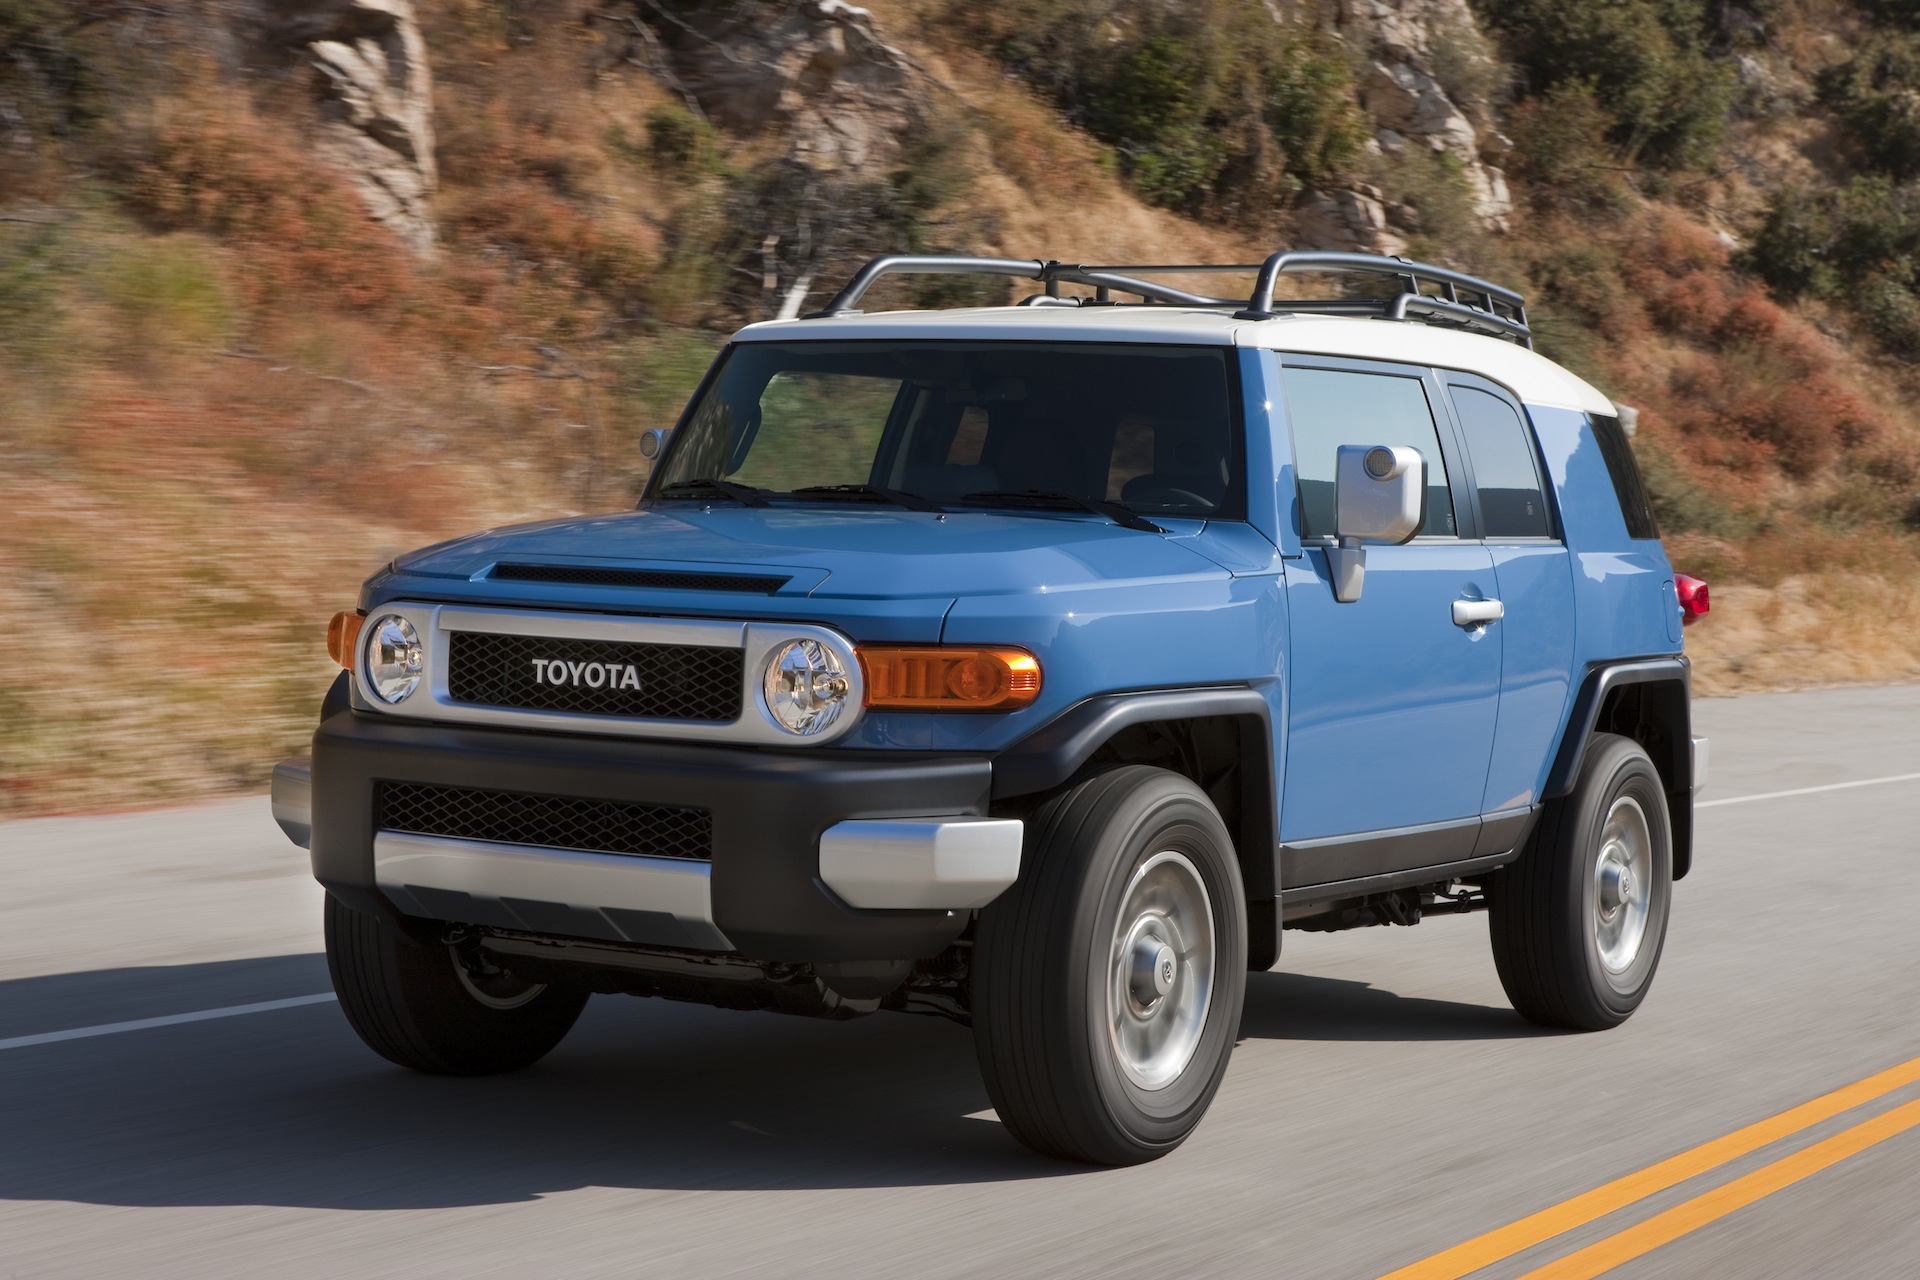 new and used toyota fj cruiser prices photos reviews specs the car connection. Black Bedroom Furniture Sets. Home Design Ideas